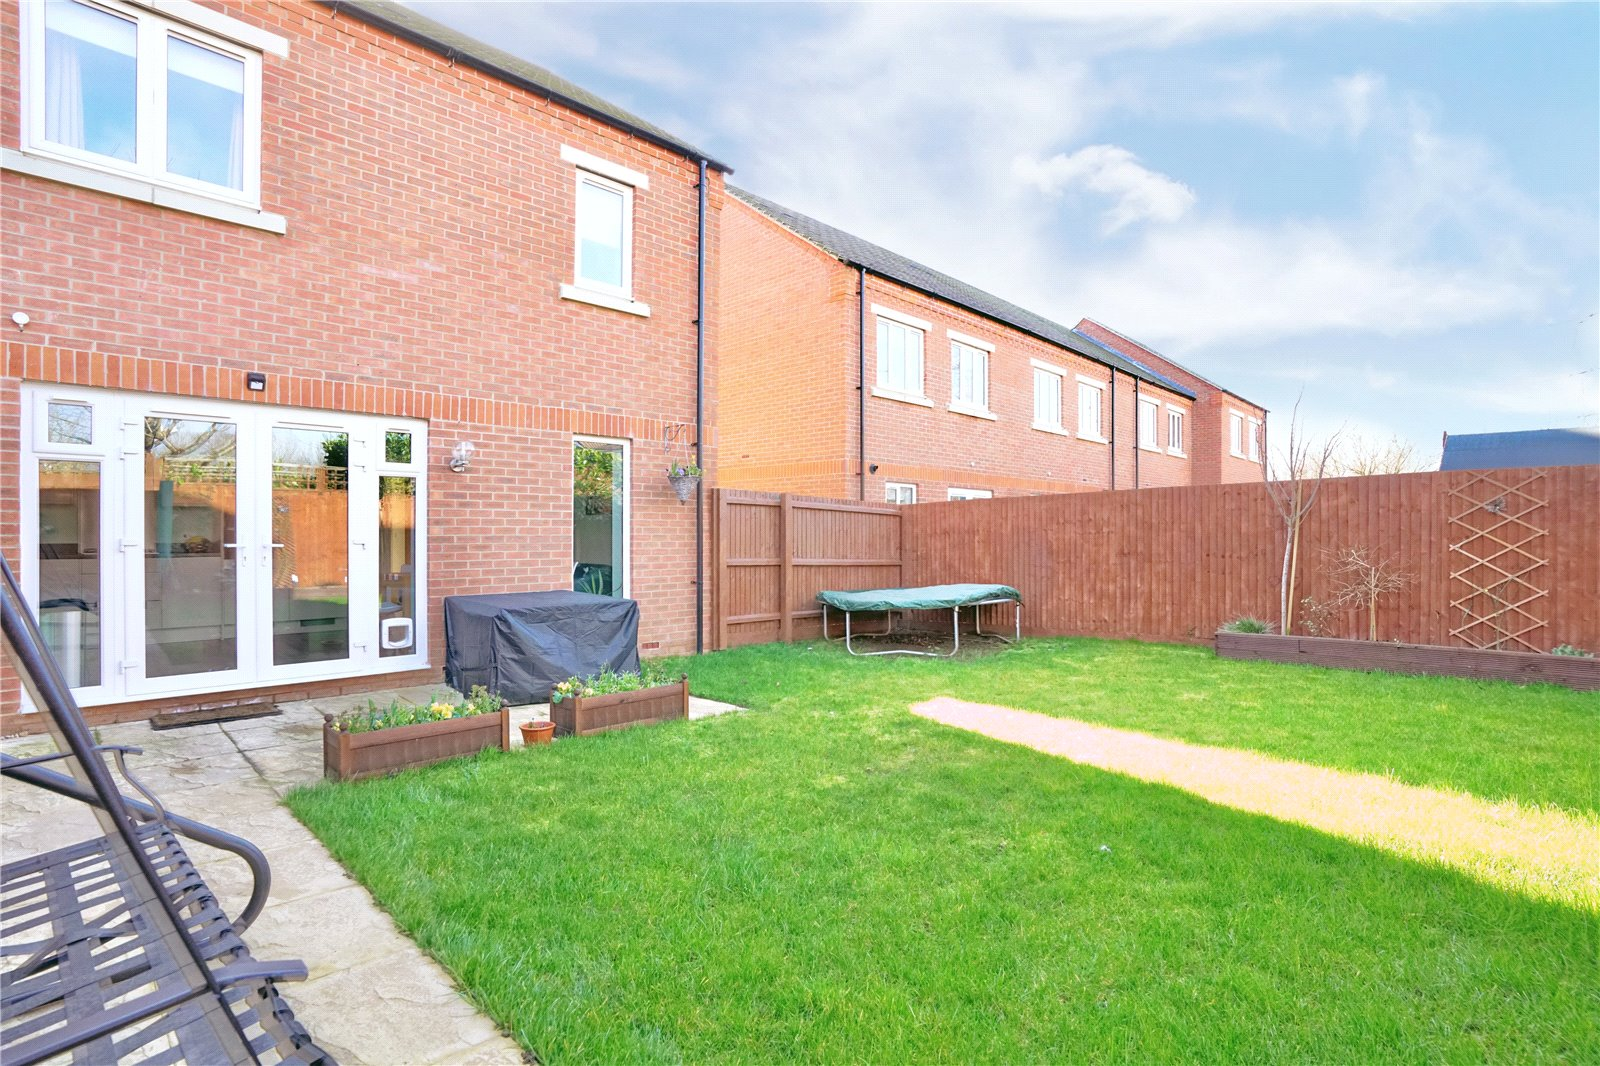 4 bed house for sale in Whinfell Close, Eaton Socon  - Property Image 12